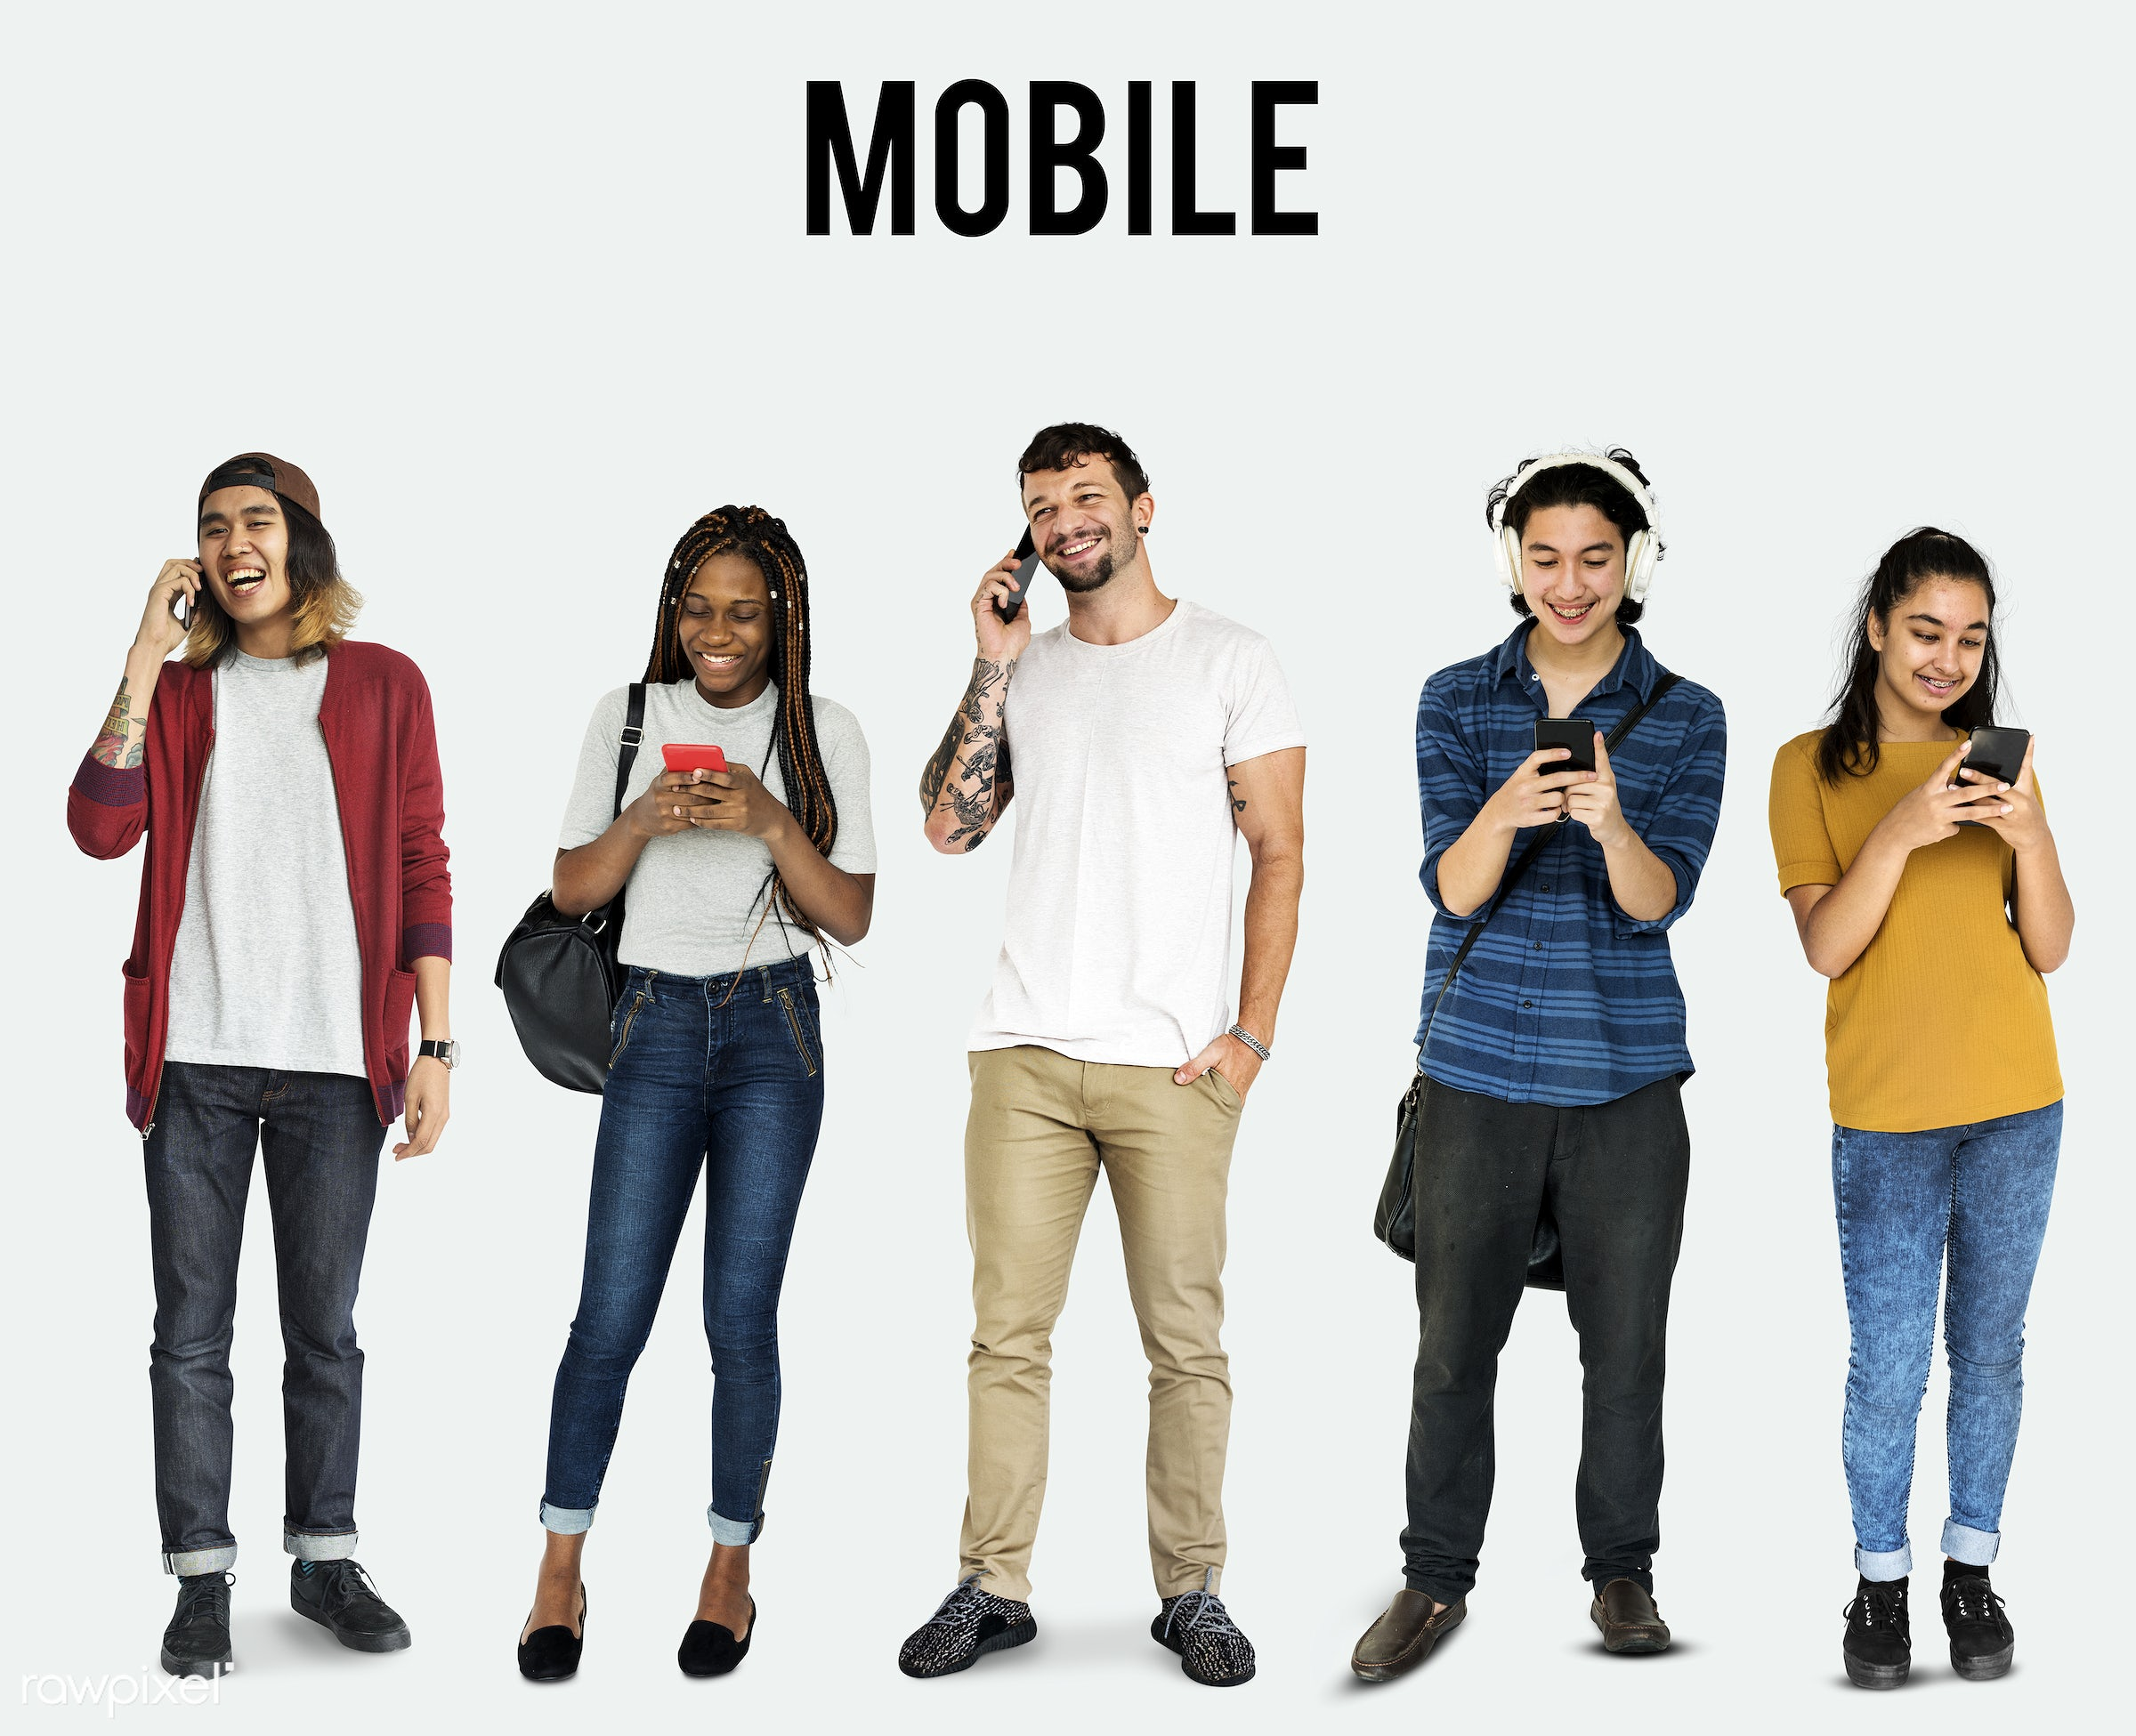 Diverse people set - expression, studio, person, phone, technology, diverse, people, asian, caucasian, young adult, social,...